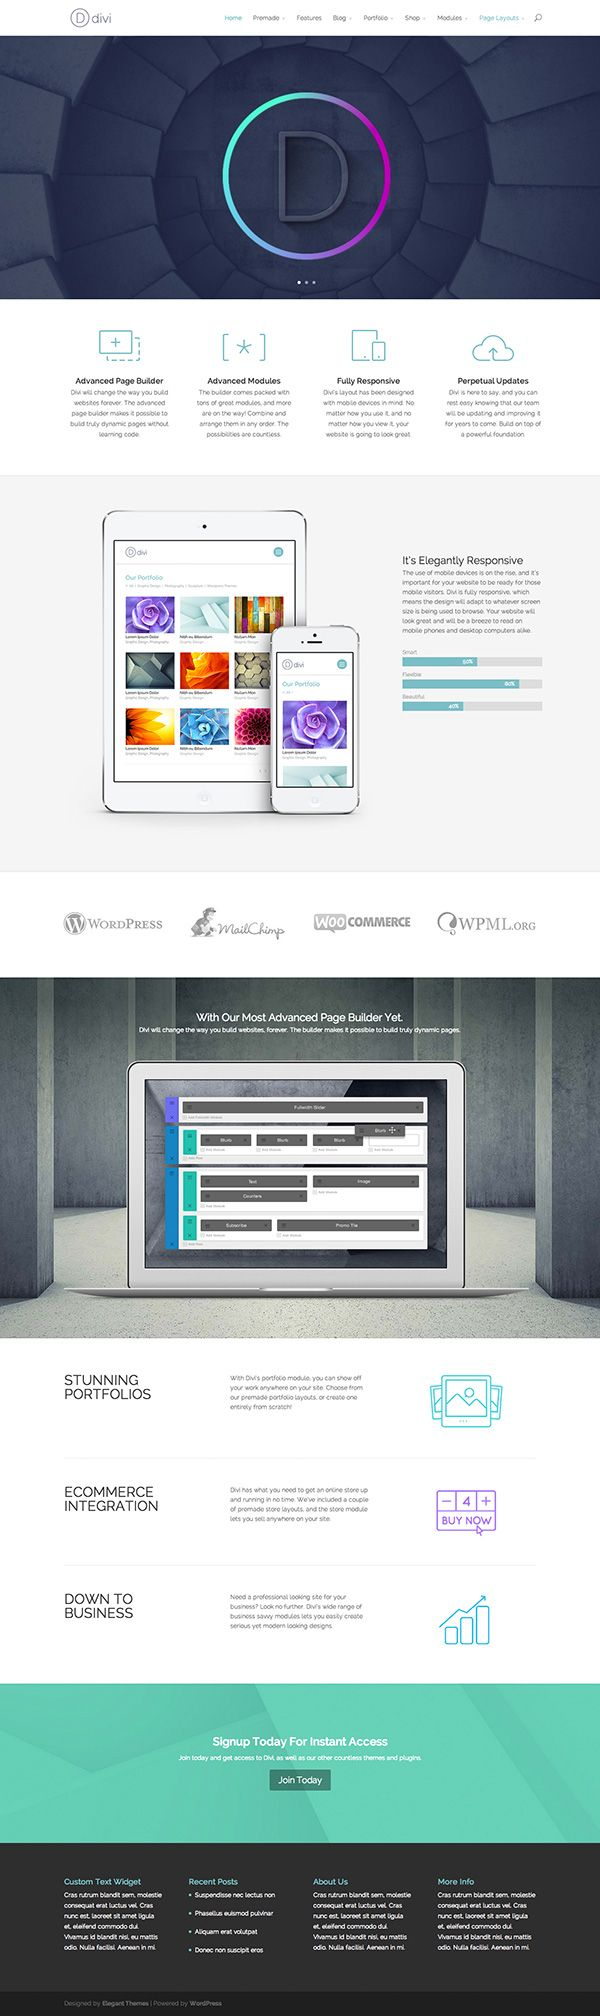 Divi the new theme for your site from Elegant Themes